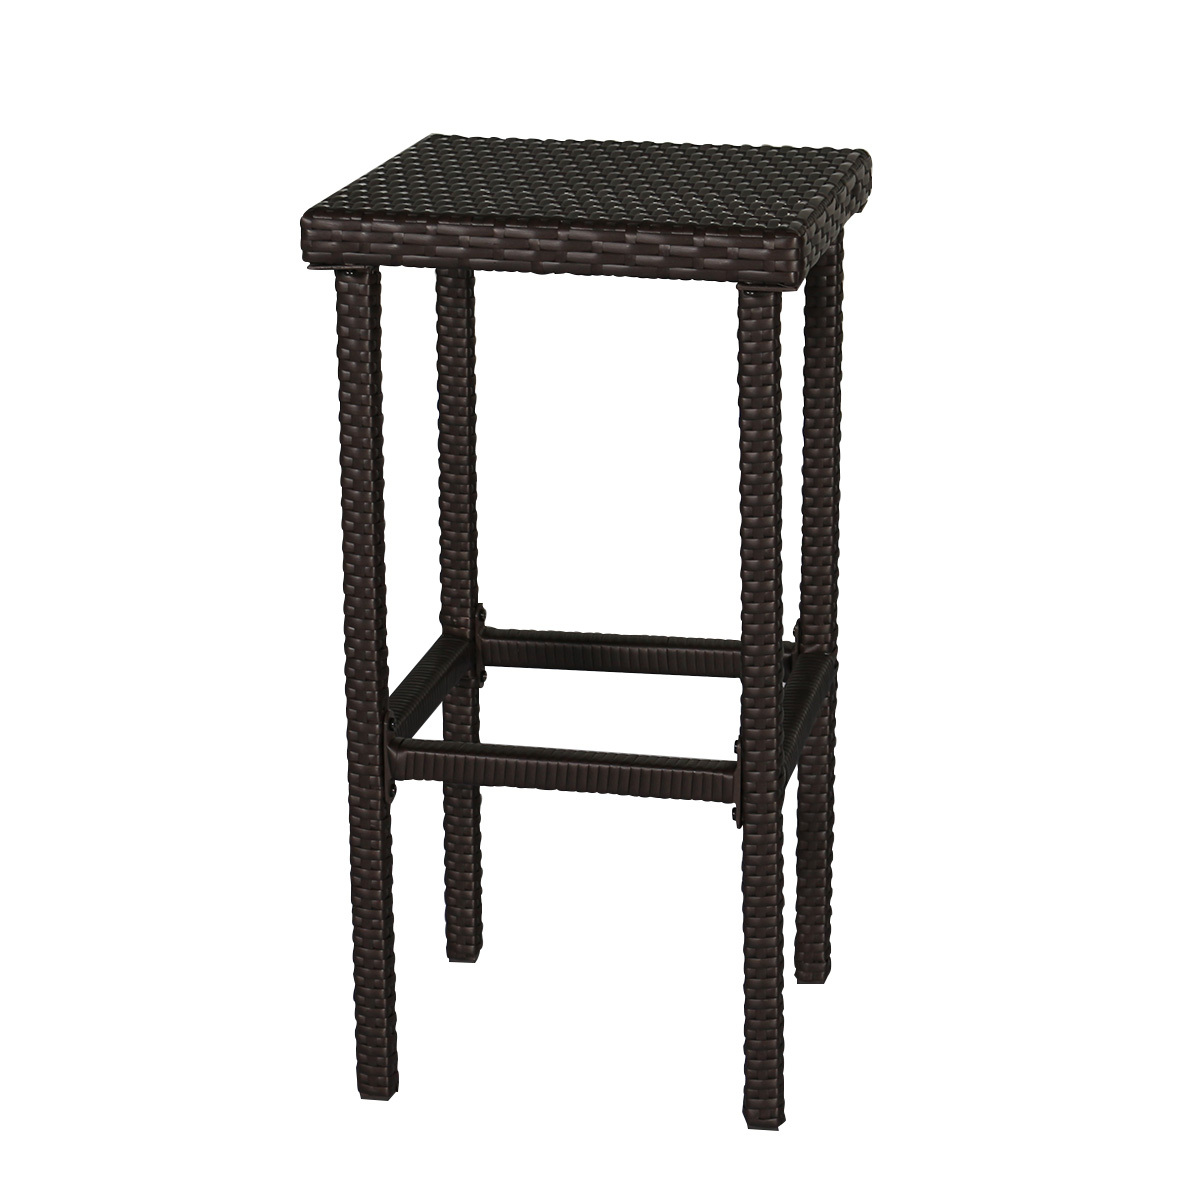 3 PC Wicker Patio Outdoor Bar Rattan Table & 2 Stools Barstool Furniture Set Red